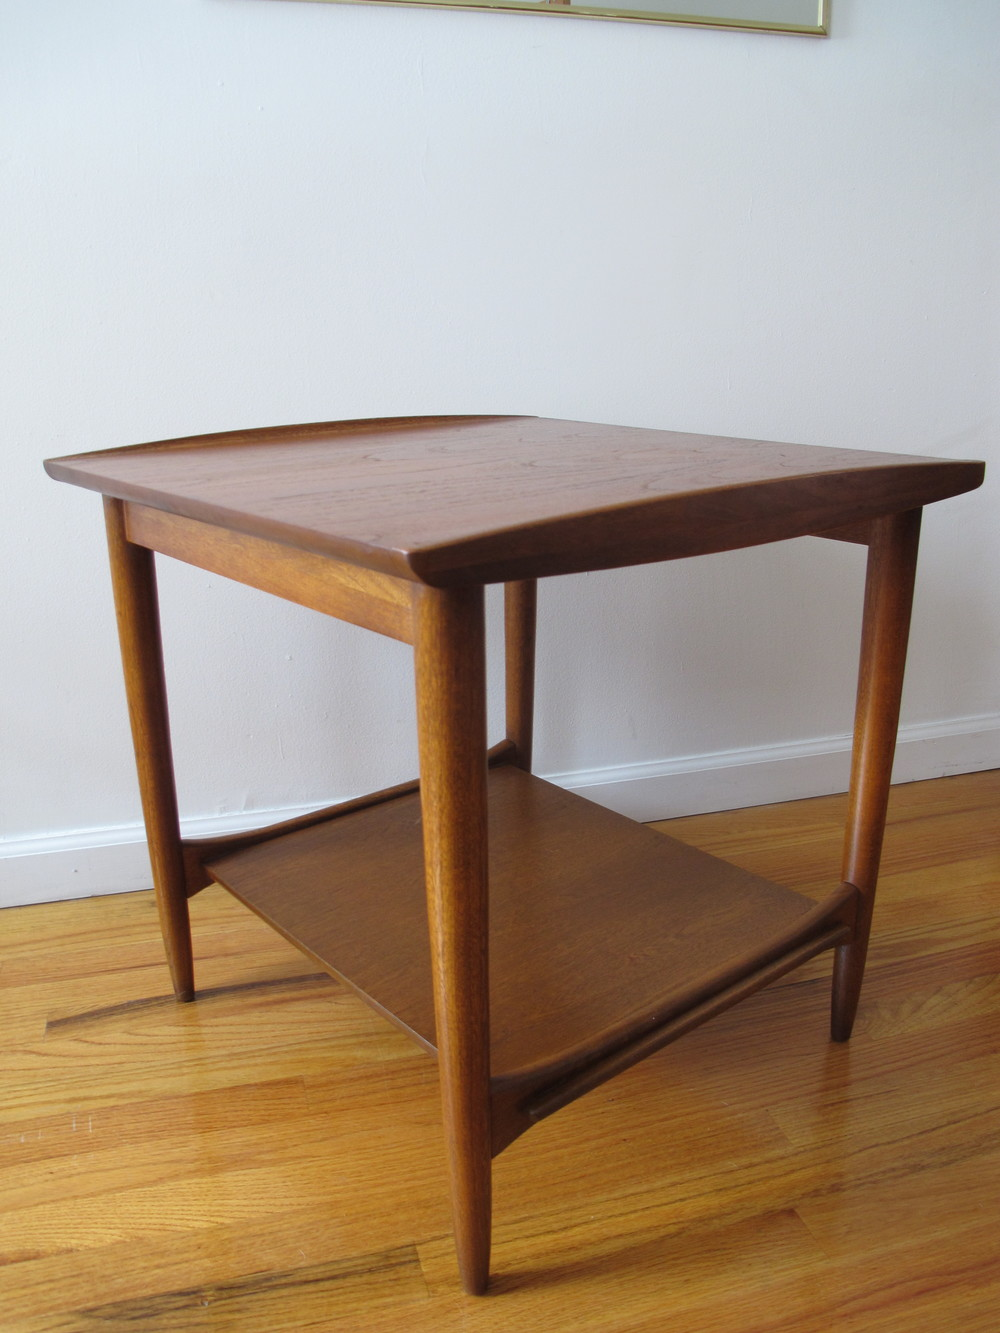 LANE DANISH MODERN STYLE SQUARE END TABLE